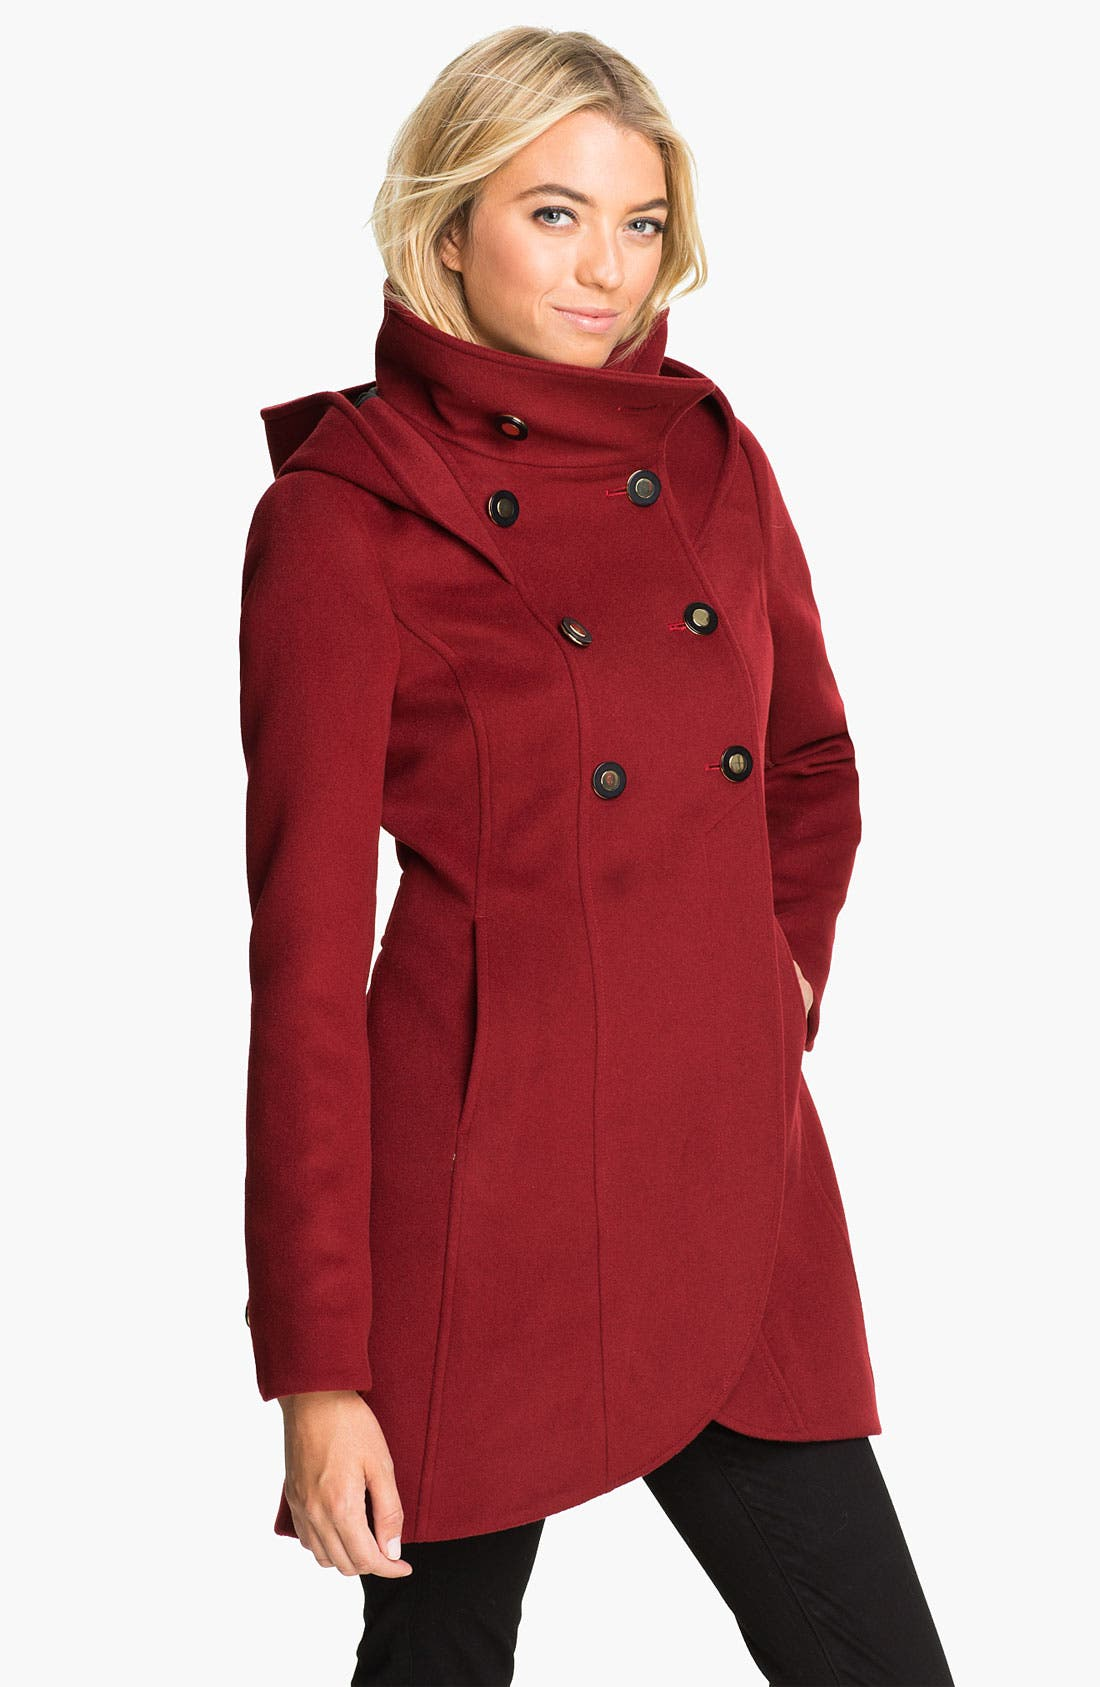 Main Image - Soïa & Kyo Hooded Wool Coat